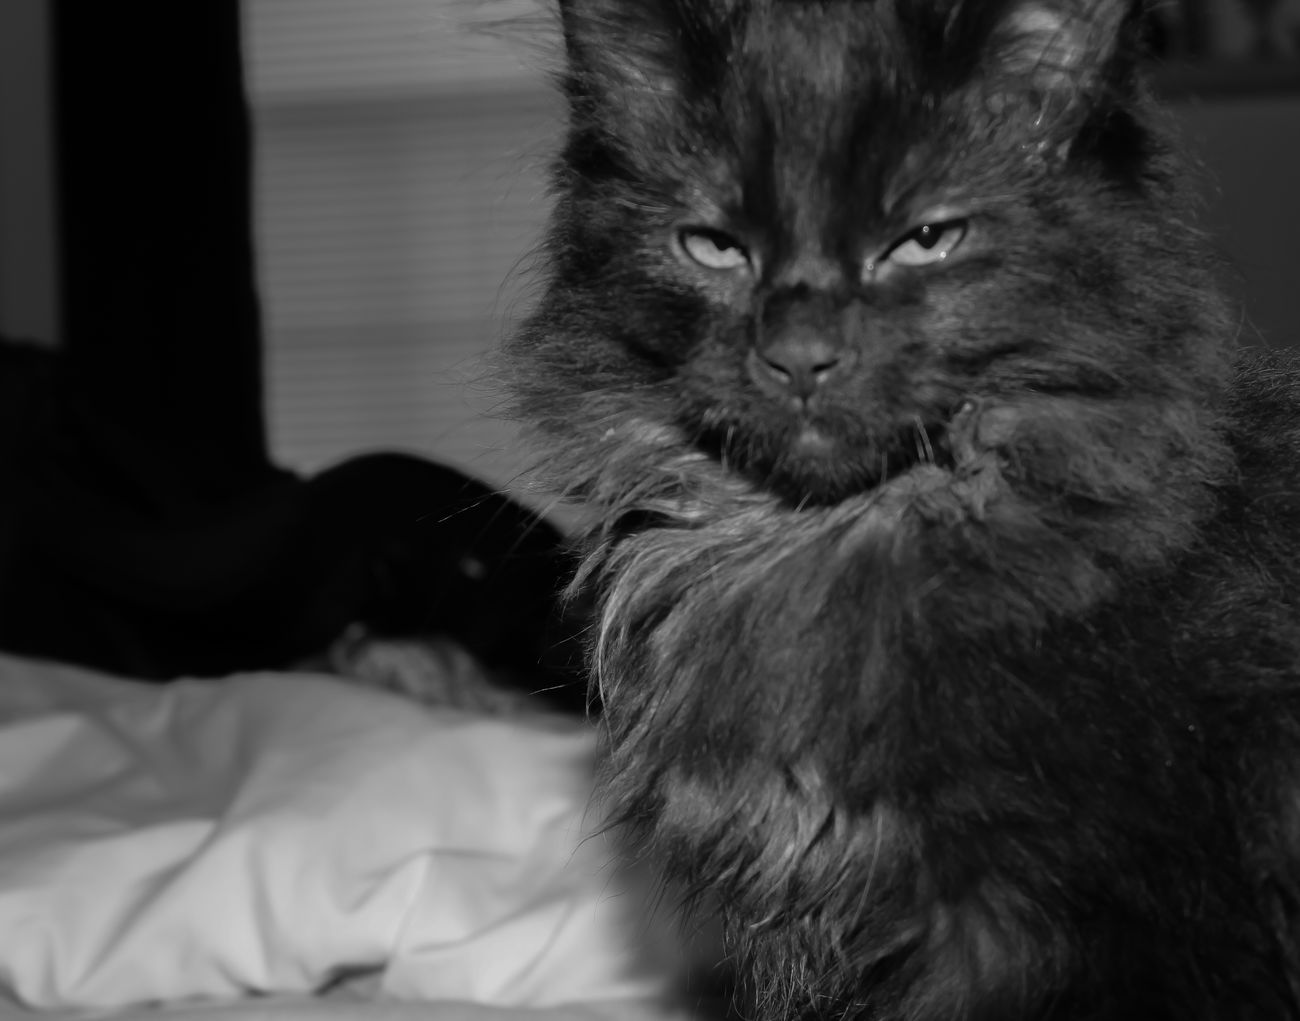 squinted eyes before he fell asleep Black And White Animals Black And White Photography Black Cat Black Cats Black Cats Are Beautiful Bnw_captures Bnw_collection Bnw_friday_eyeemchallenge Close-up Domestic Cat Kitten Pets Portrait Sleepy